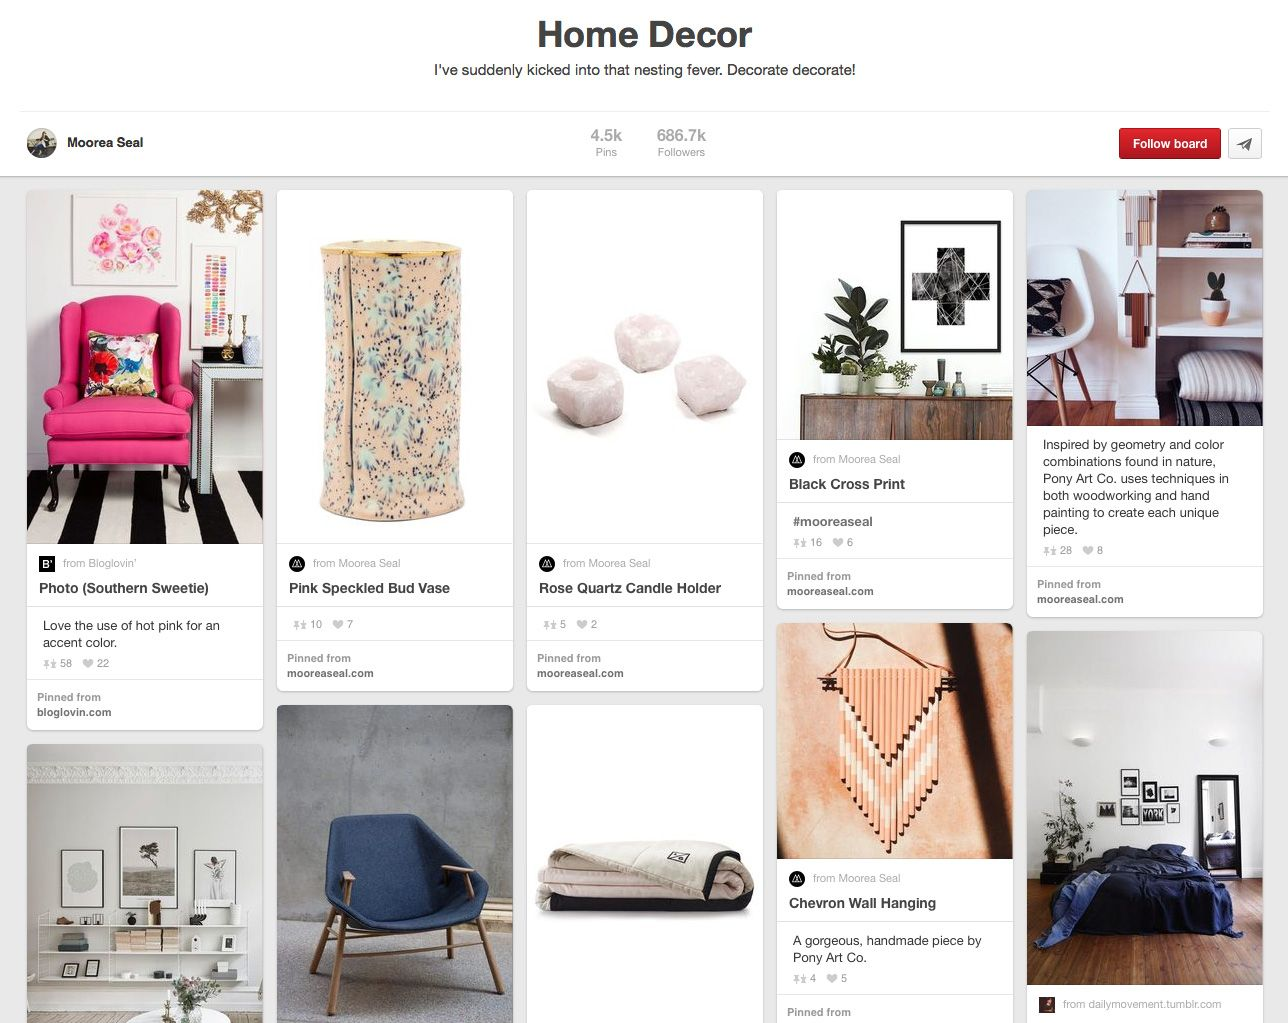 12 Home Decor Pinterest Boards That Will Inspire Your Dream Home